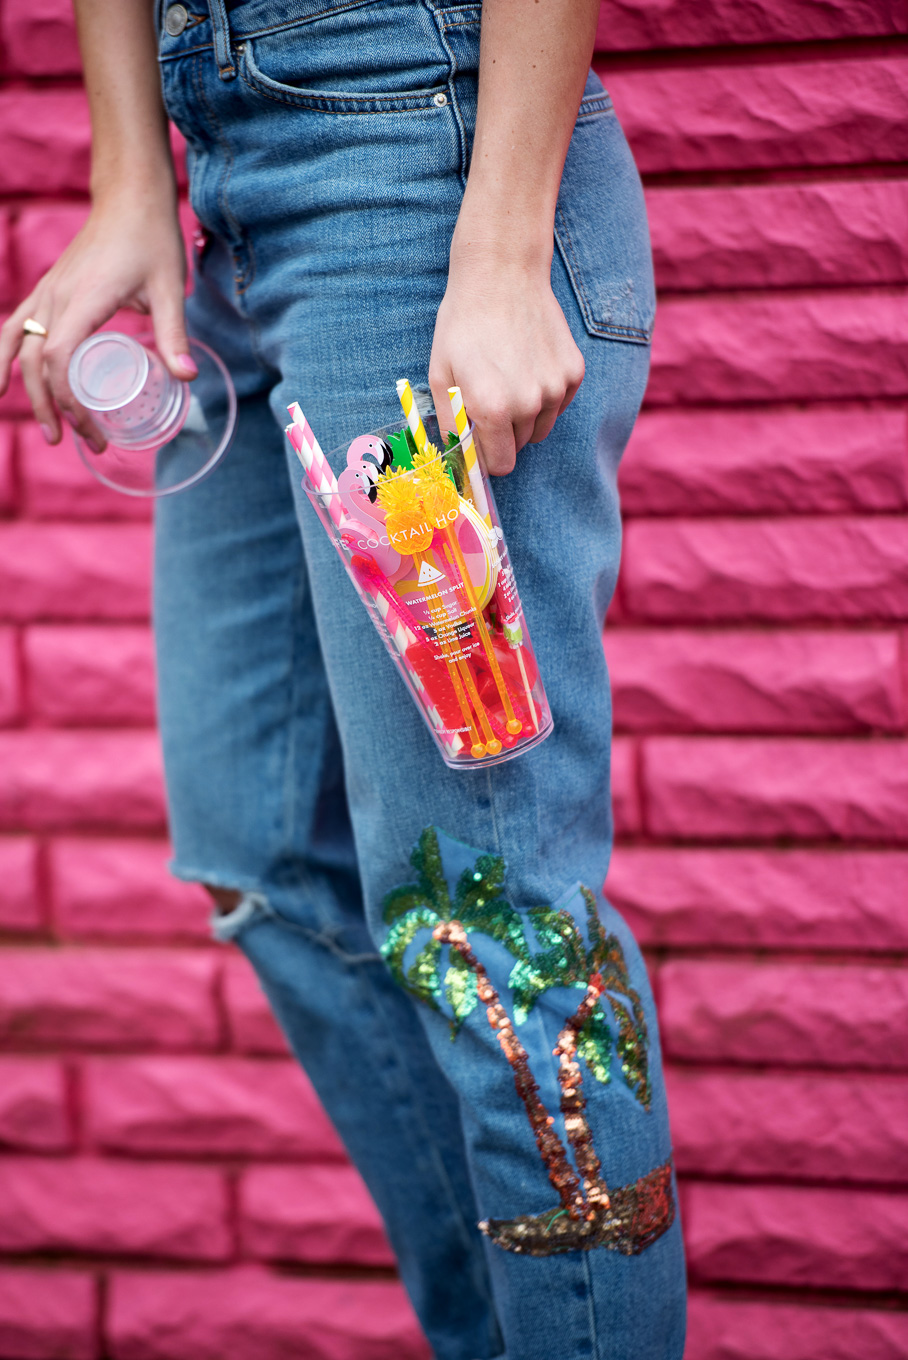 Amy Believe in Pink in Topshop sequin jeans and Tiny Tassel earrings and Sunnylife cocktail kit-2